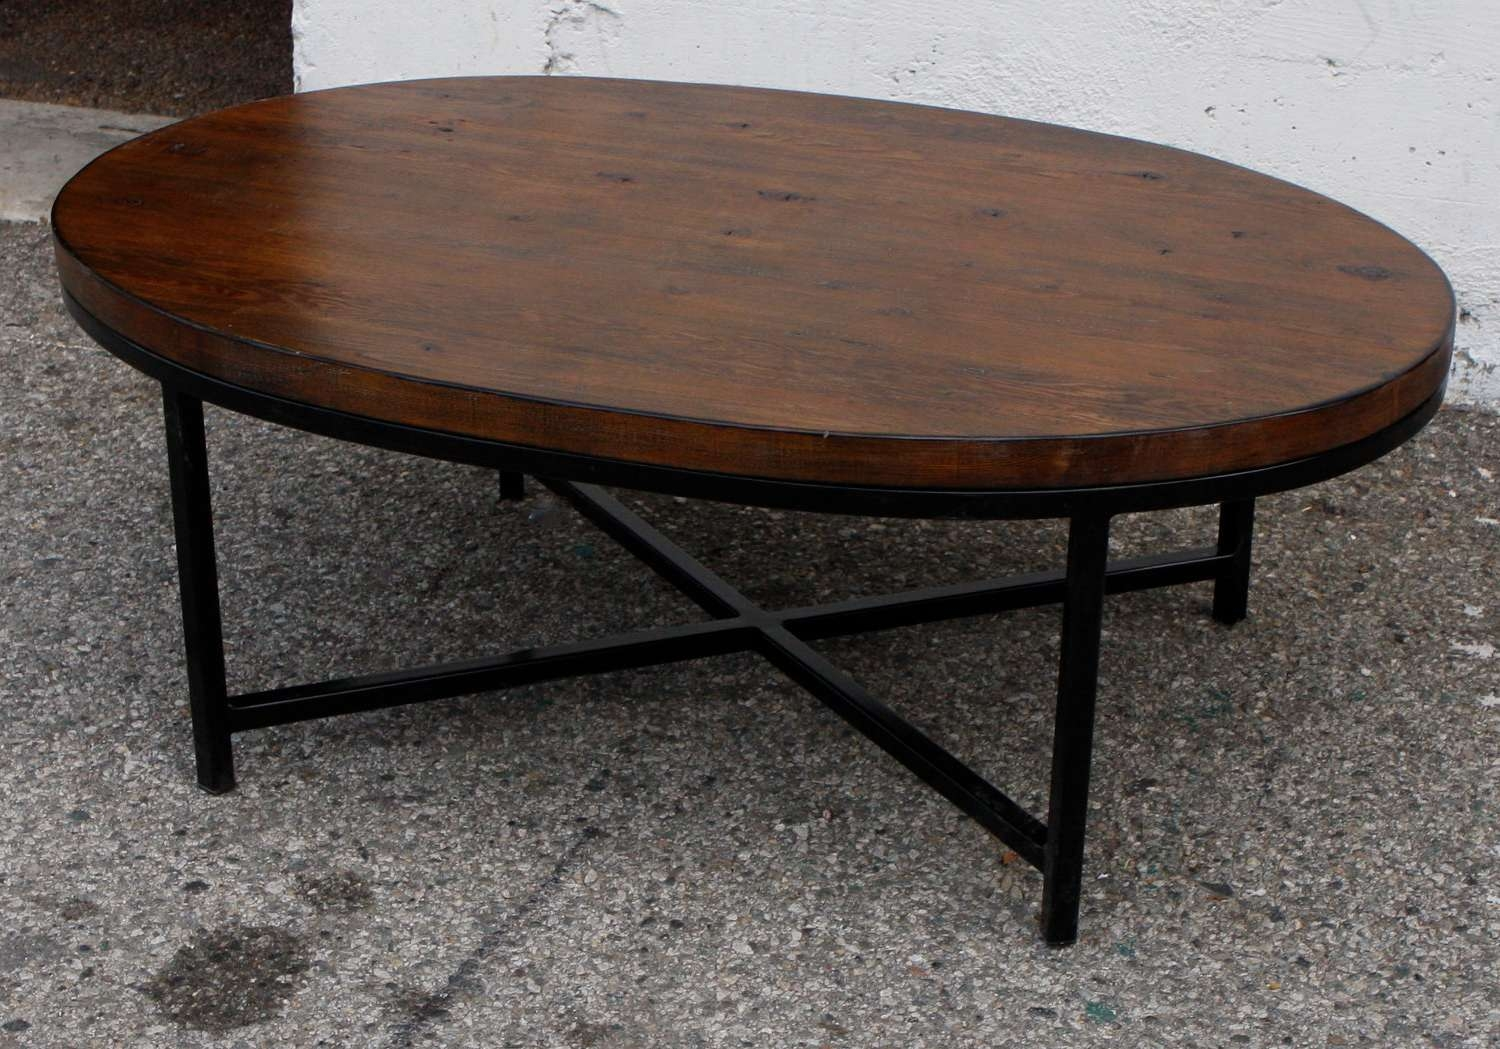 Favorite Dark Wood Coffee Tables Pertaining To Coffee Tables : Dazzling Wooden Dark Wood Coffee Table With (View 8 of 20)